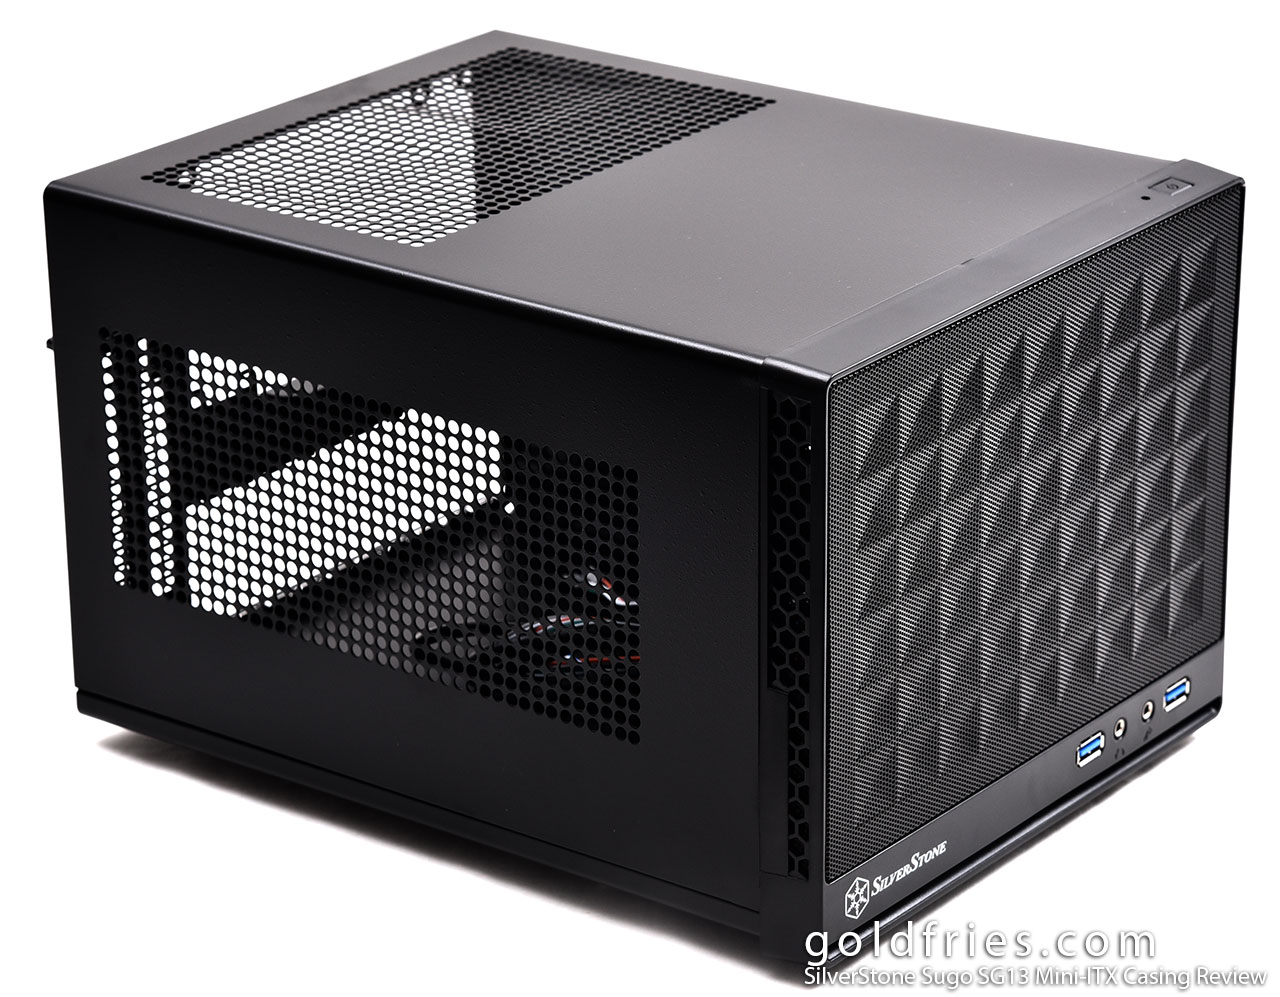 SilverStone Sugo SG13 Mini-ITX Casing Review